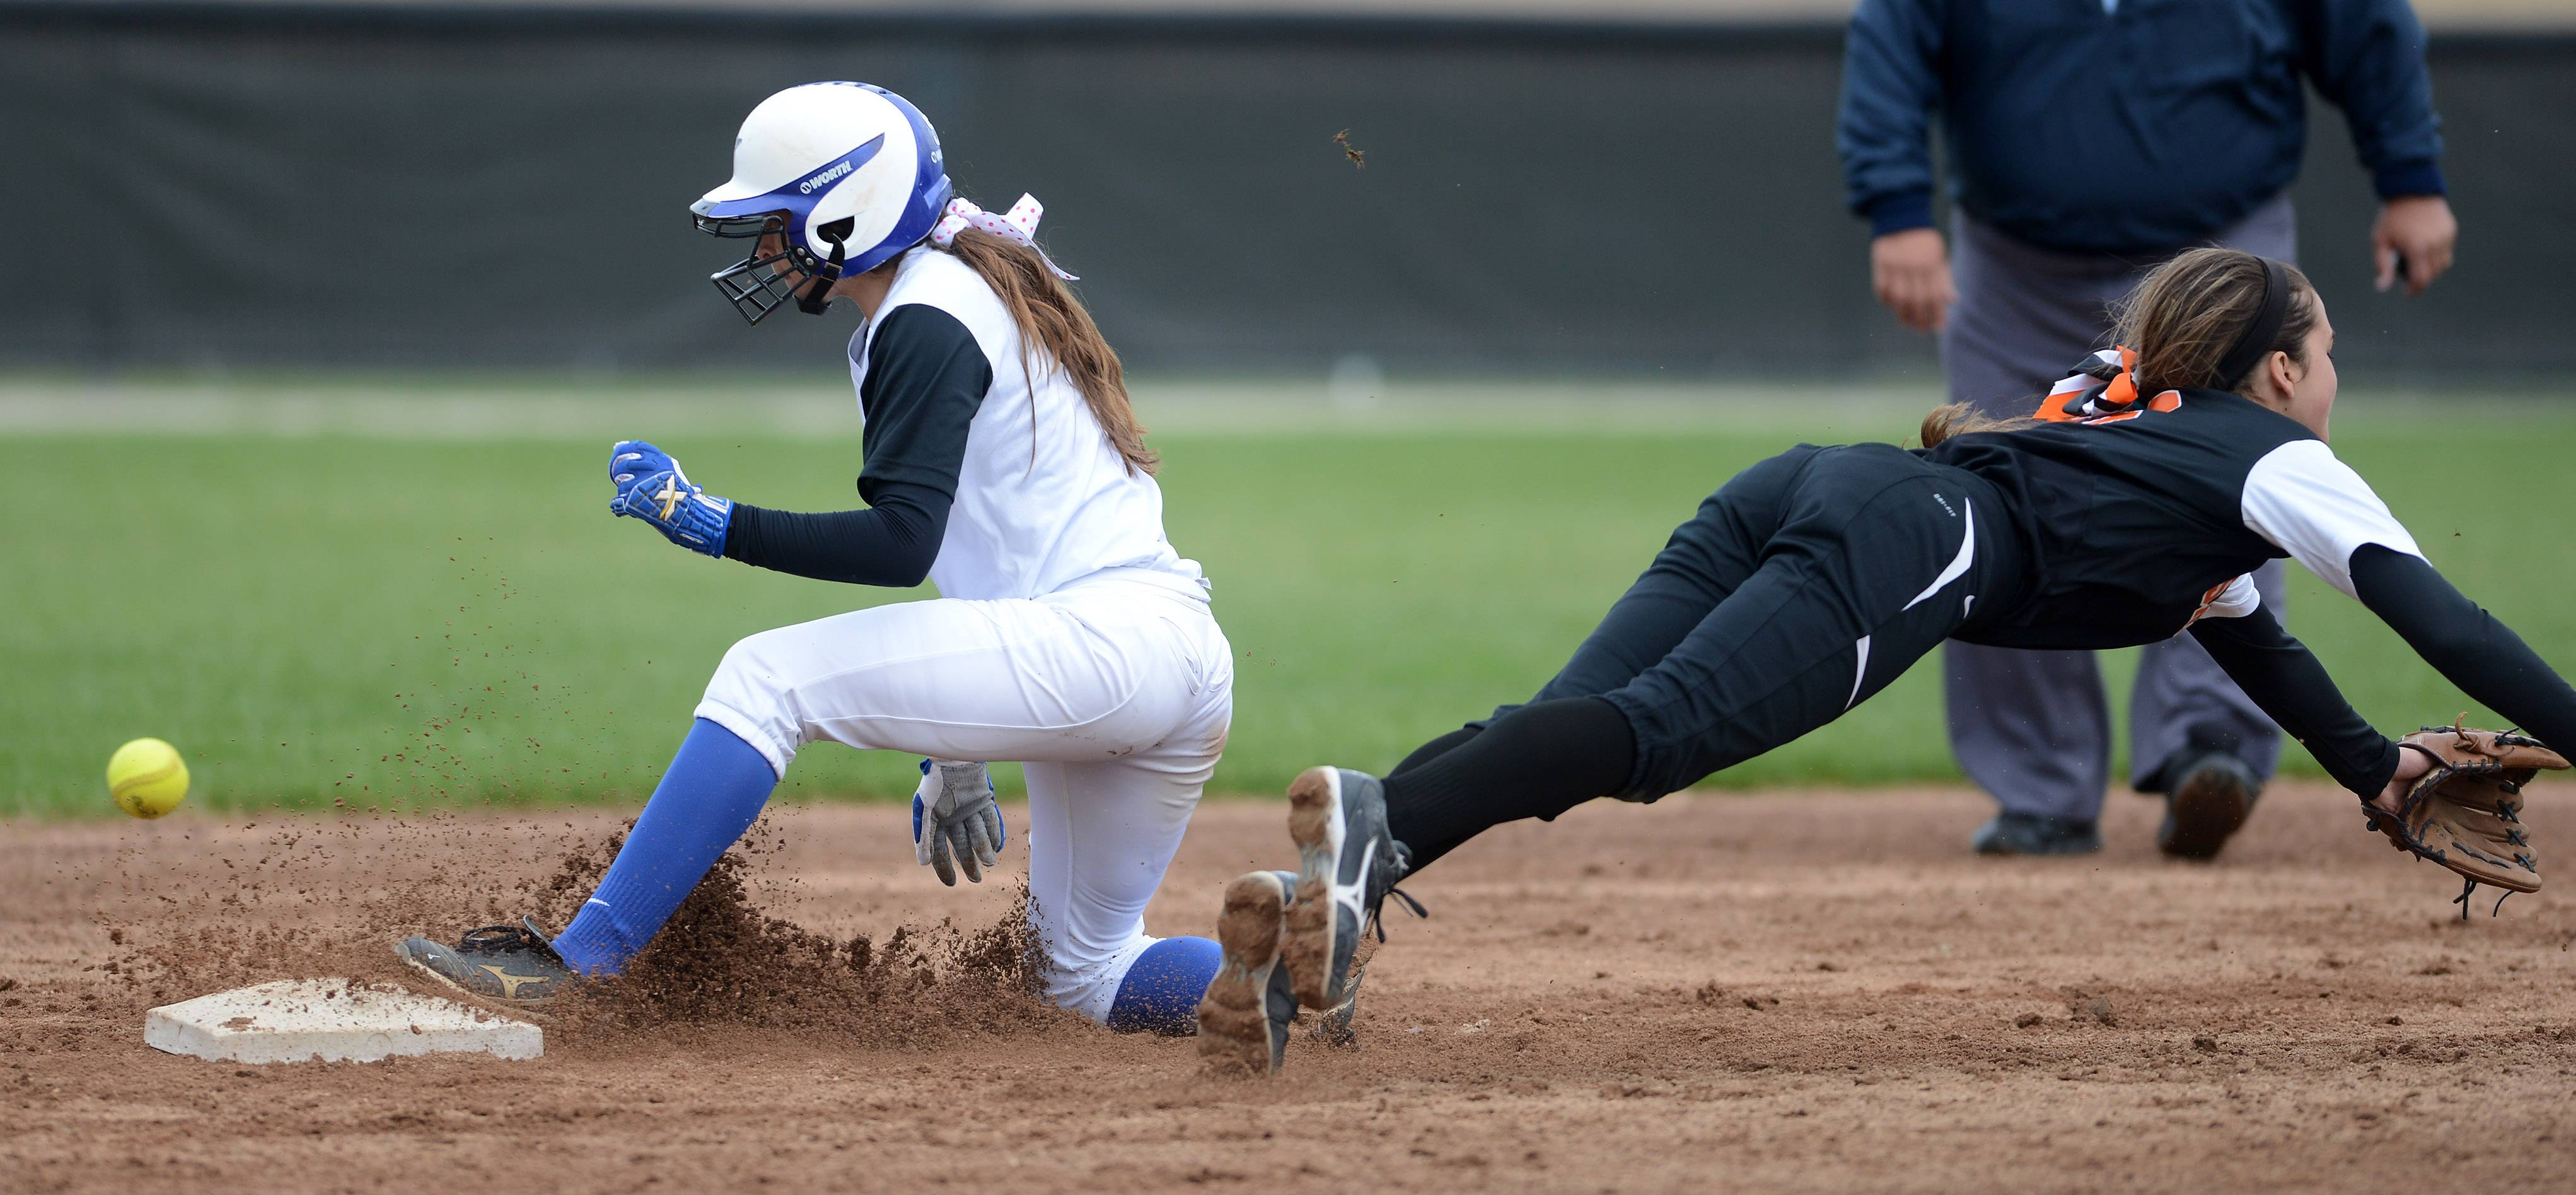 St. Charles North's Sabrina Rabin slides safely into second with a steal as the throw gets past a diving Olivia Cheatham.